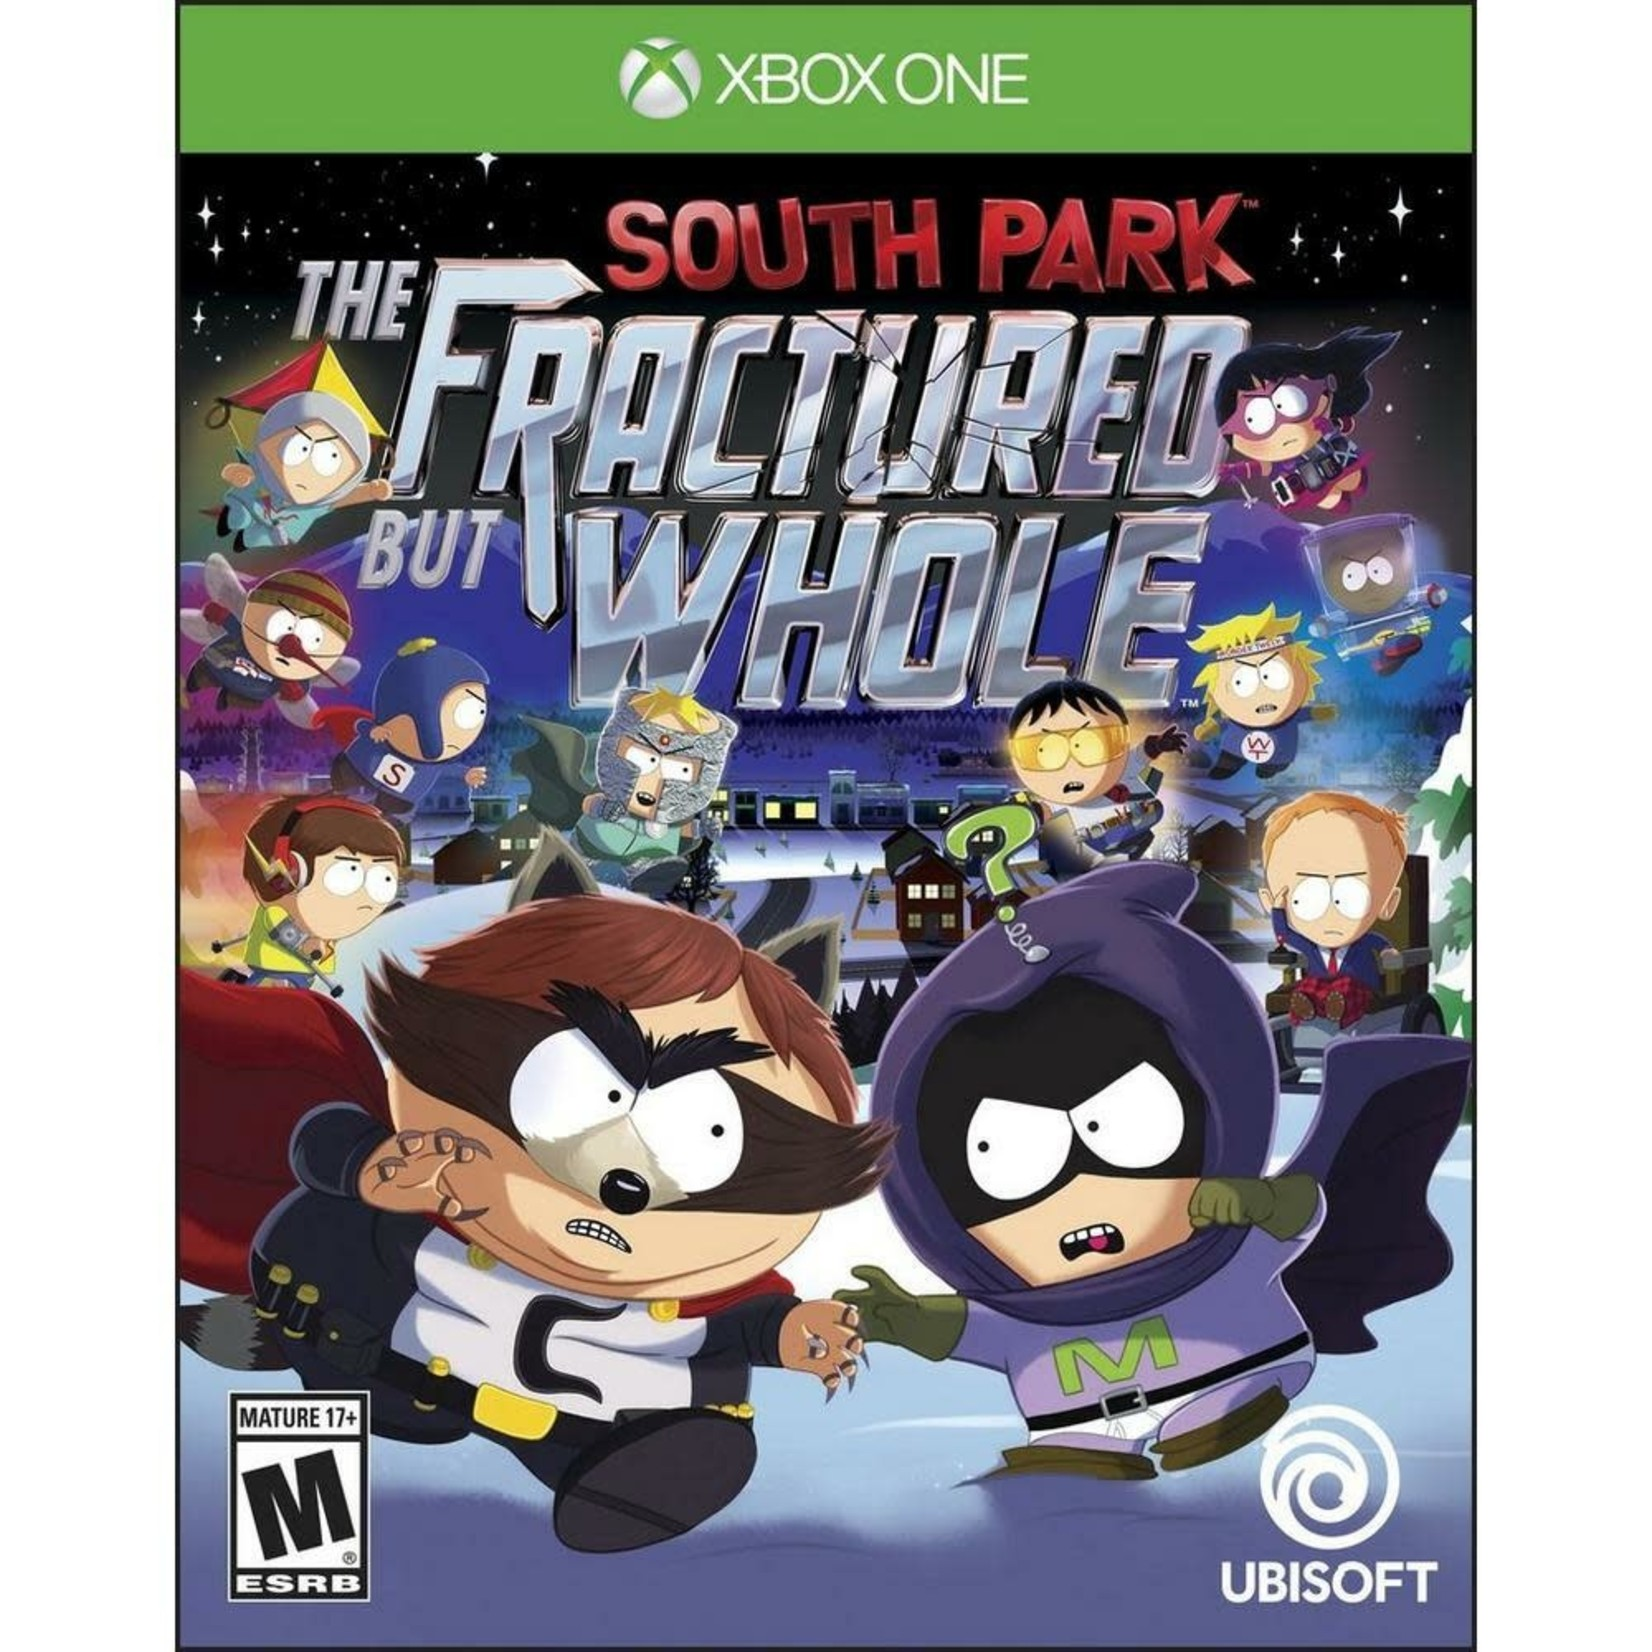 XB1-South Park: The Fractured But Whole